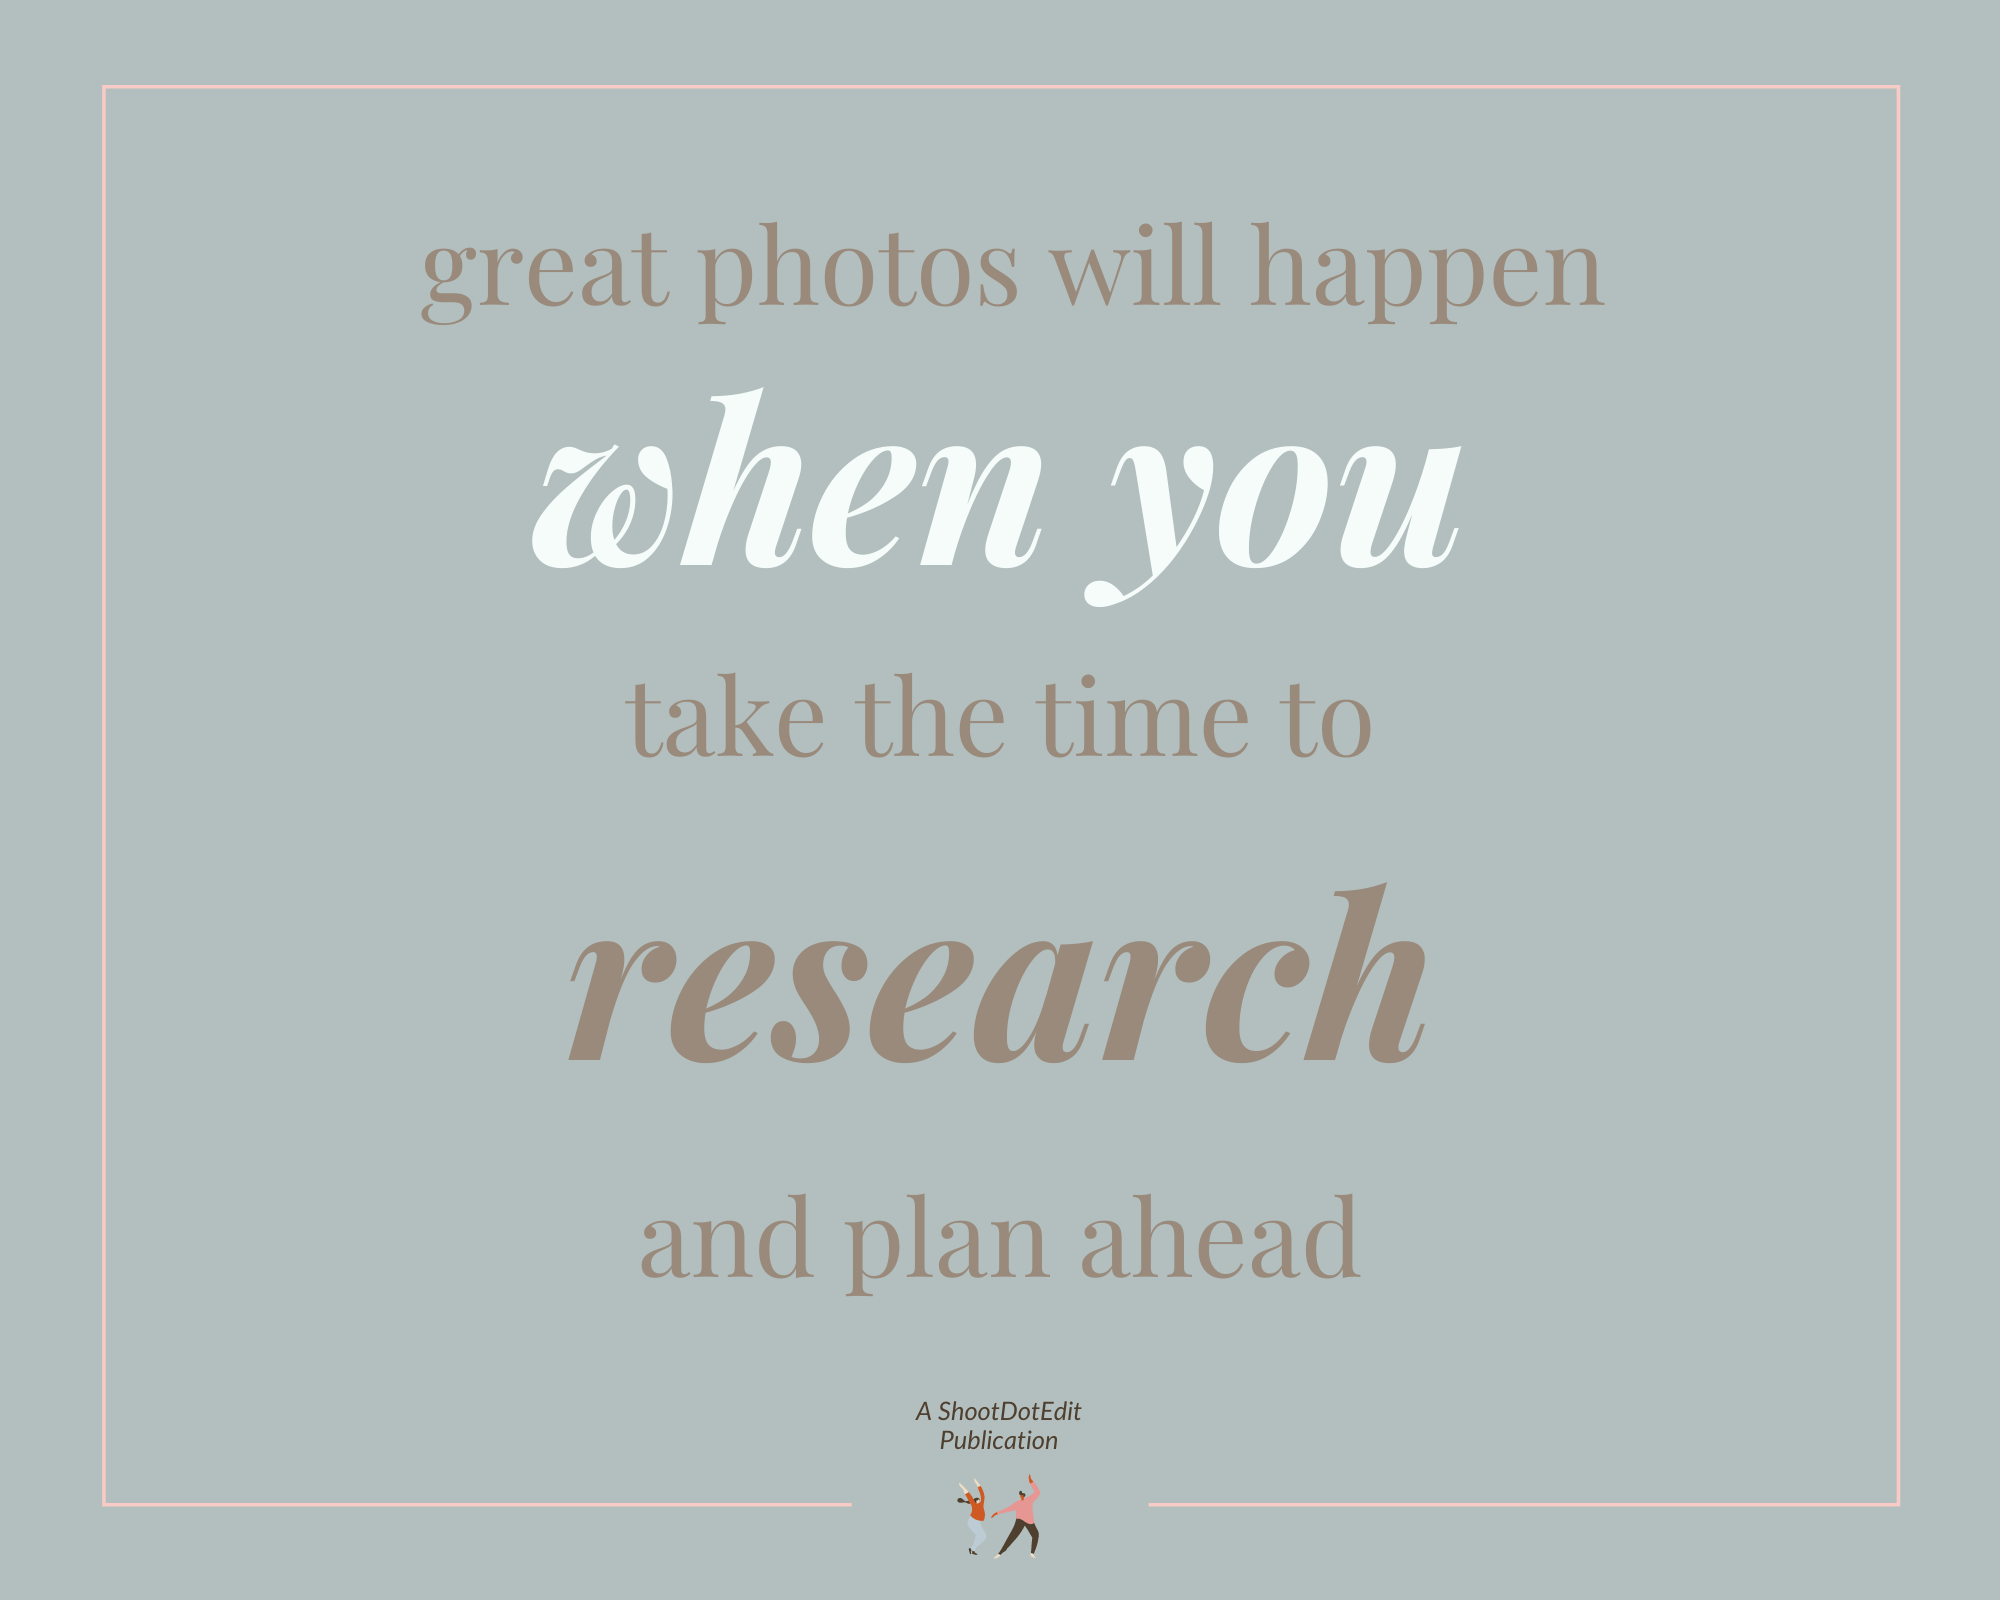 Infographic stating great photos will happen when you take the time to research and plan ahead